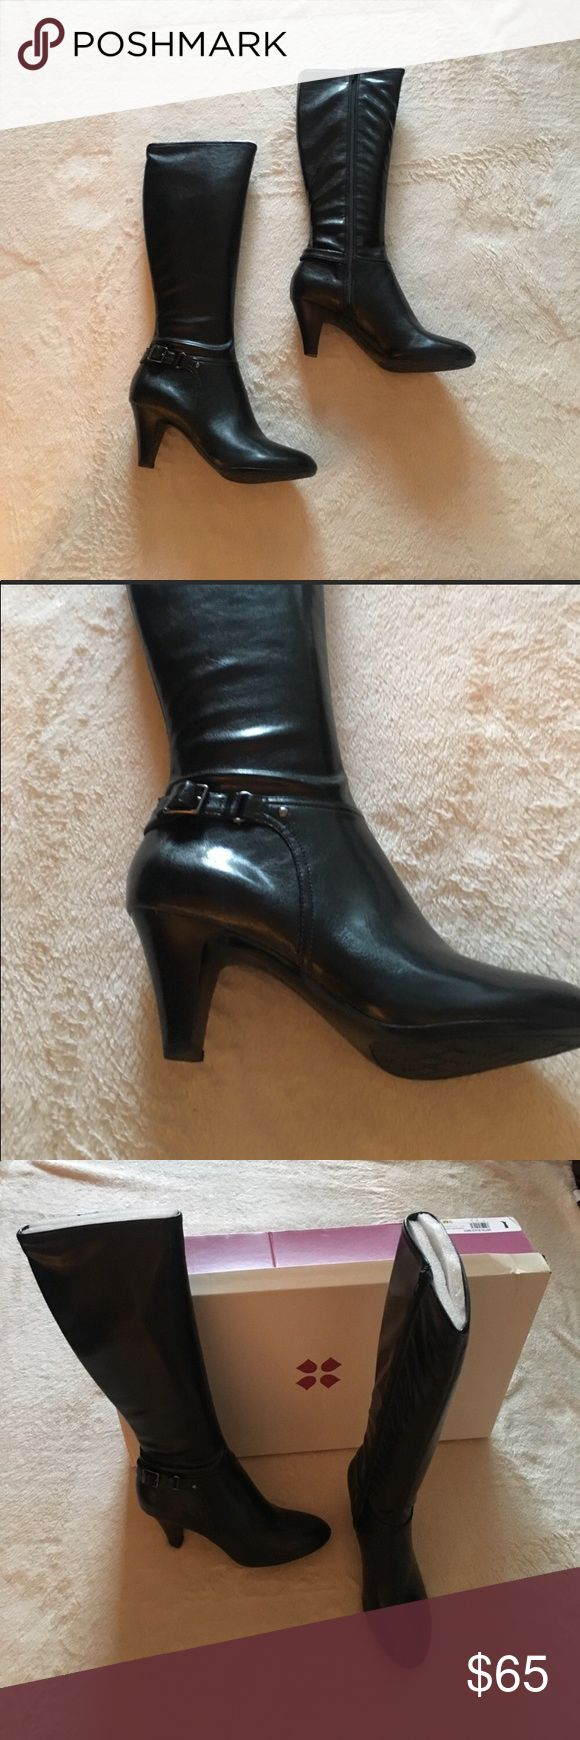 Naturalizer black heeled boots!!! Size 9 NWT and box! Naturalizer Britta black heeled boots. The heel is 2.5 inches. Has a buckle detail! Zipper up the inside of the leg/calf. Naturalizer Shoes Heeled Boots